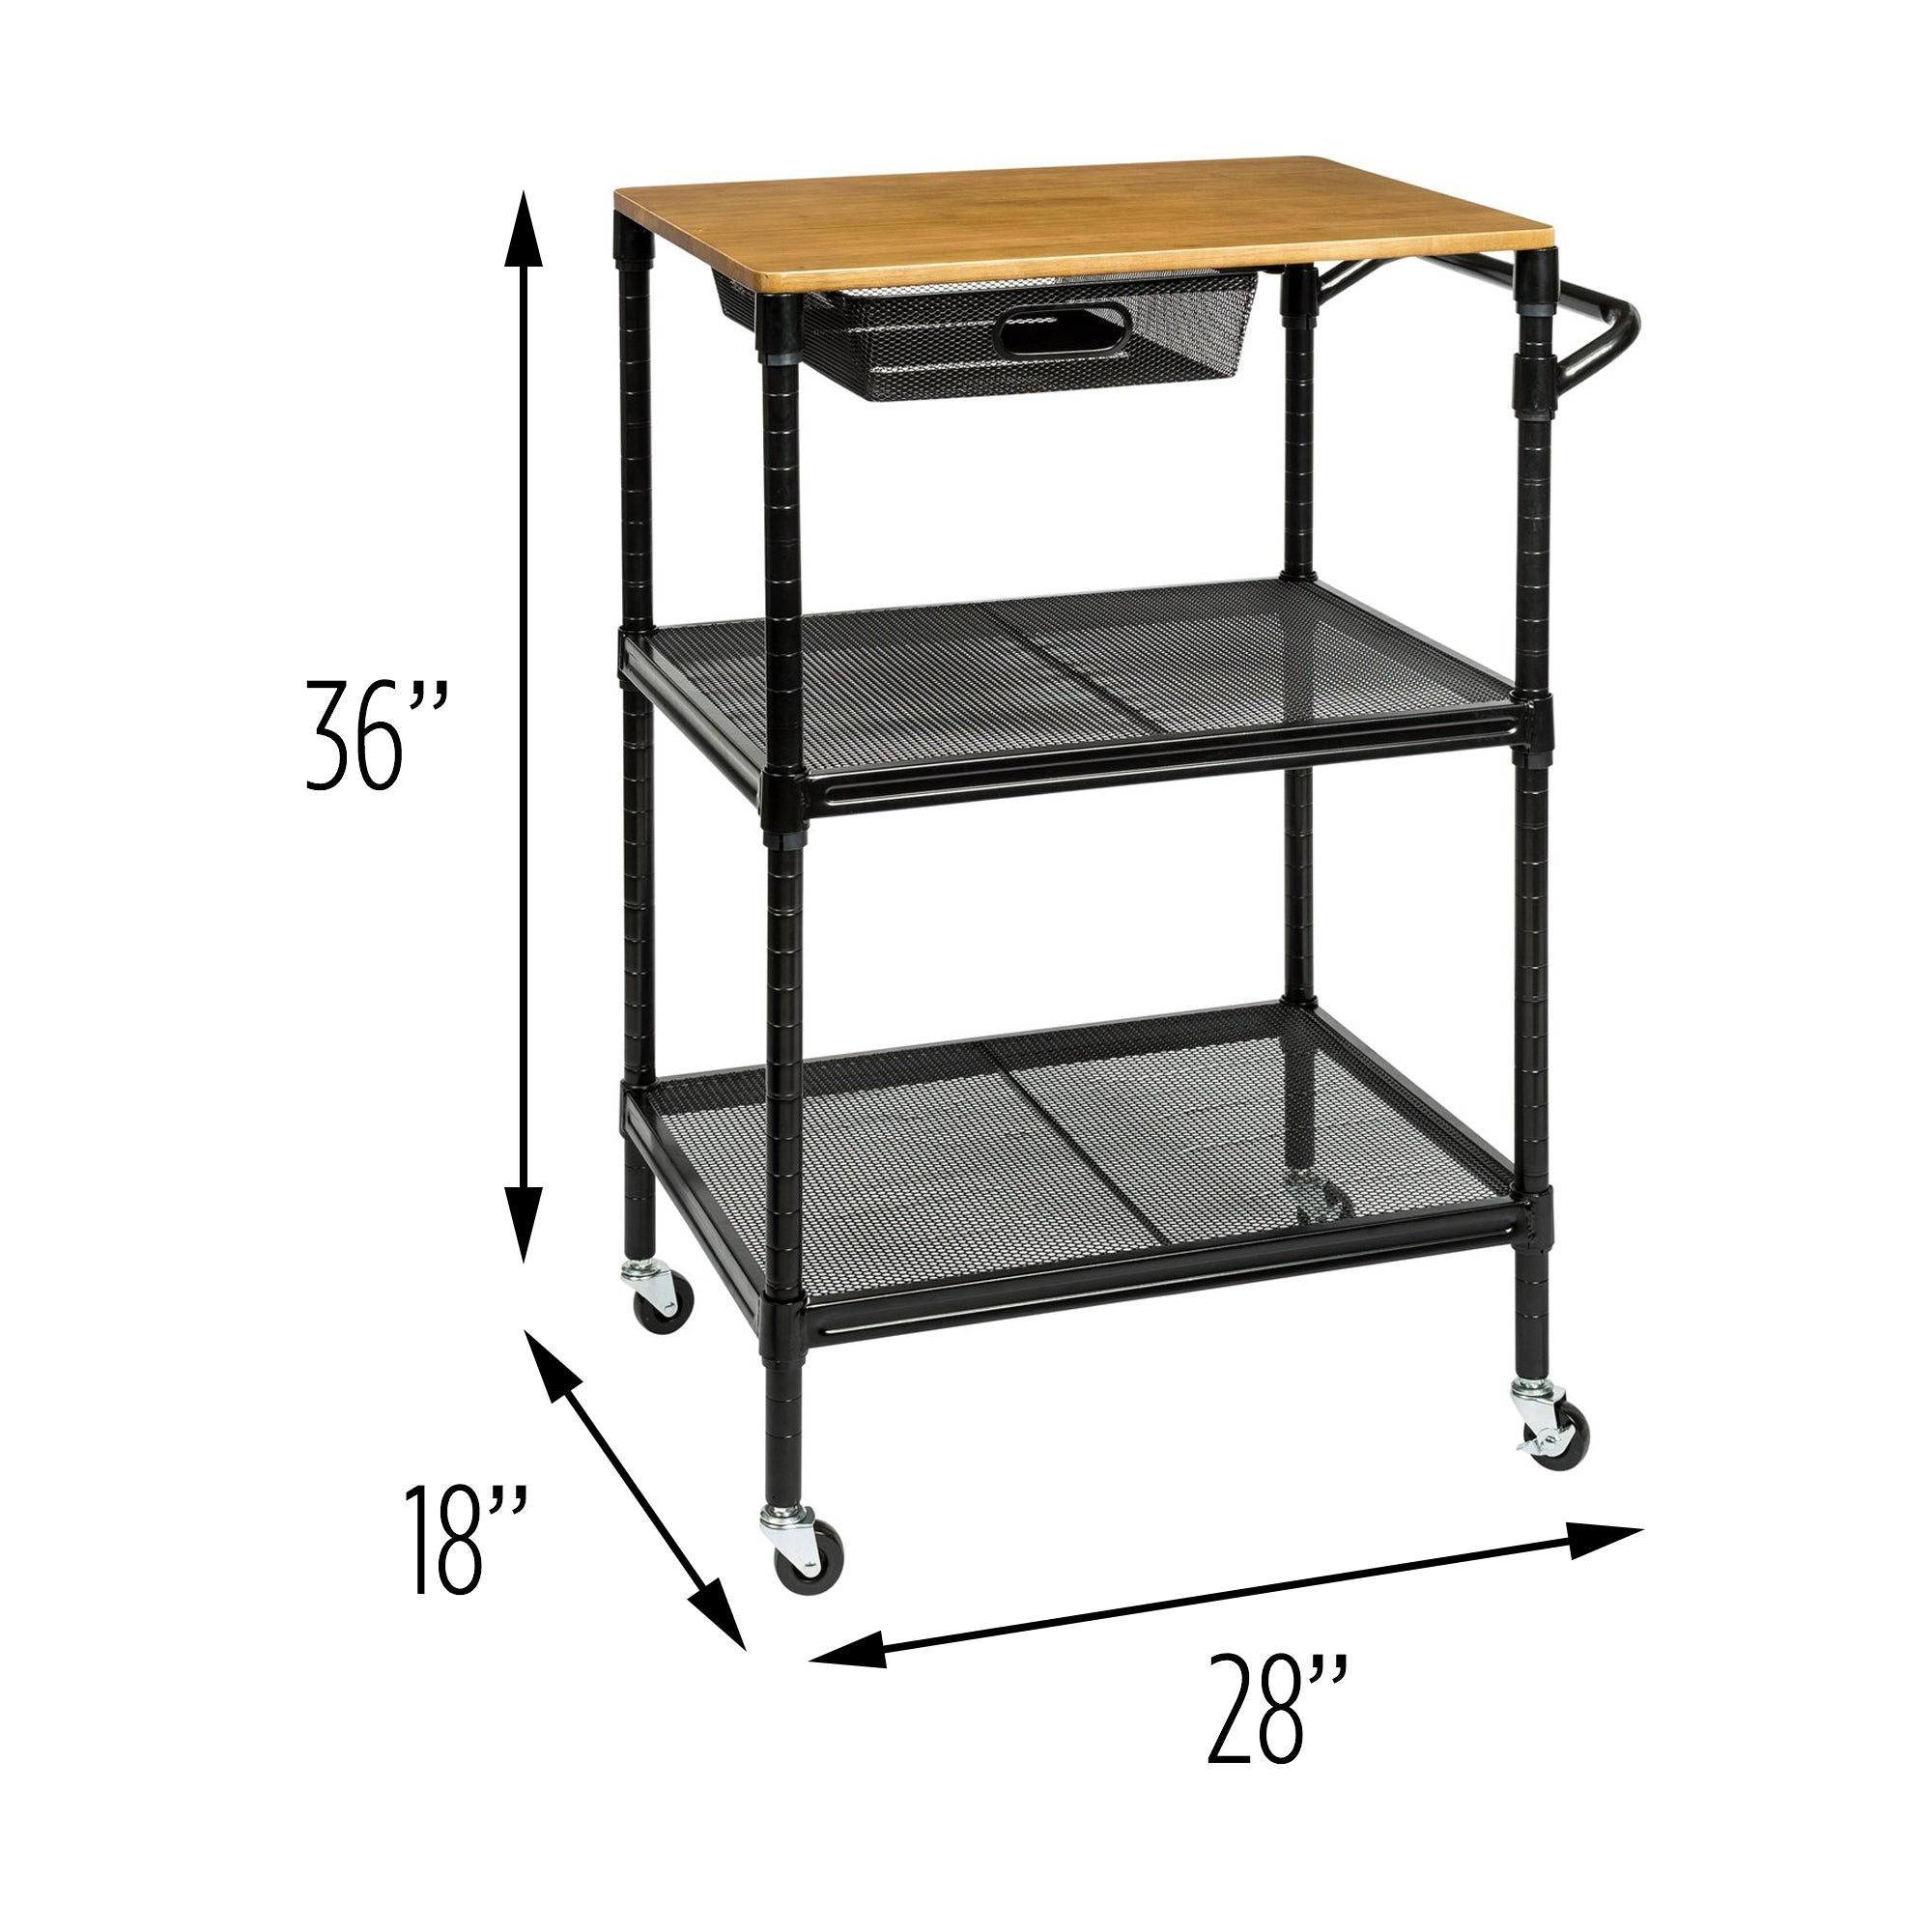 36-Inch Kitchen Storage Cart with Wheels, Drawers and Handle ...